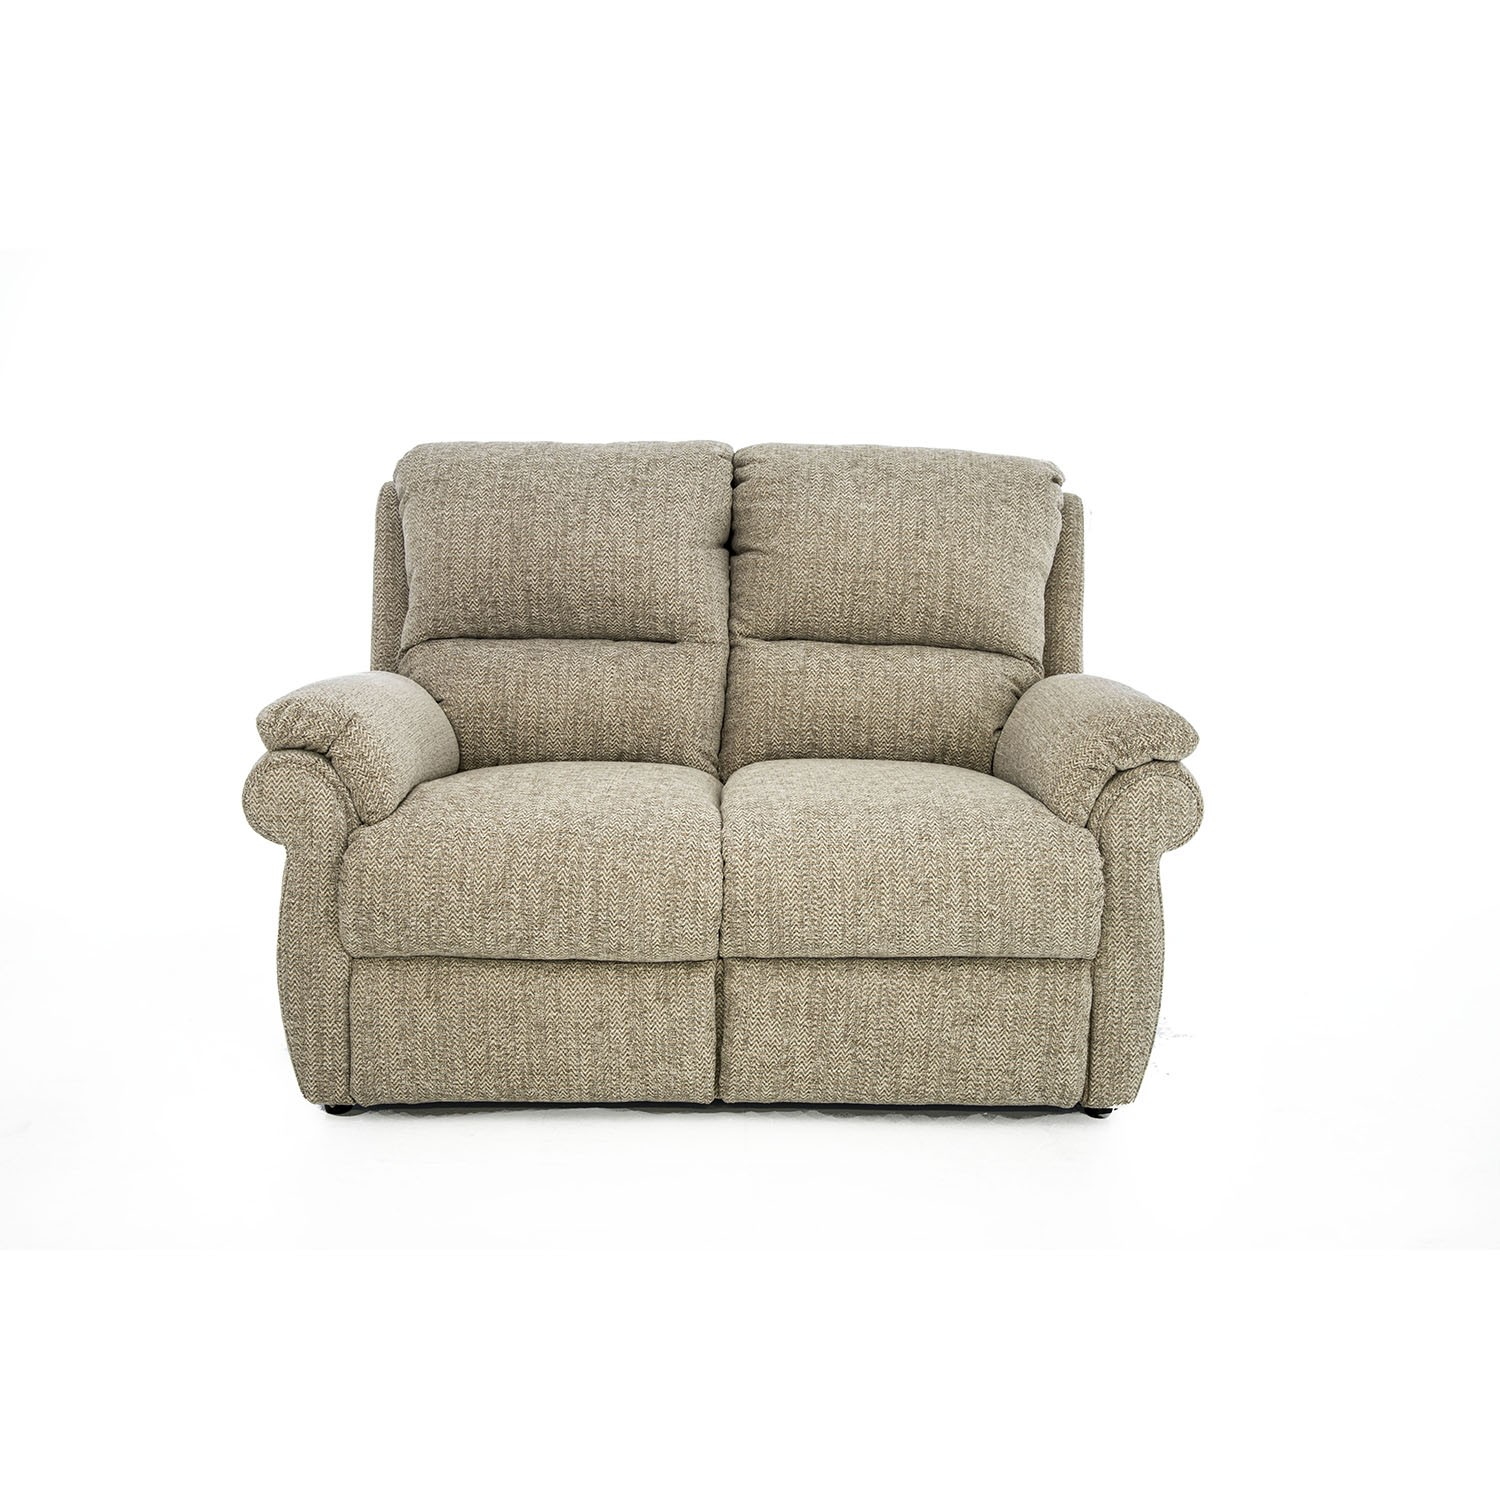 Casa Hereford 2 Seater Fabric Sofa